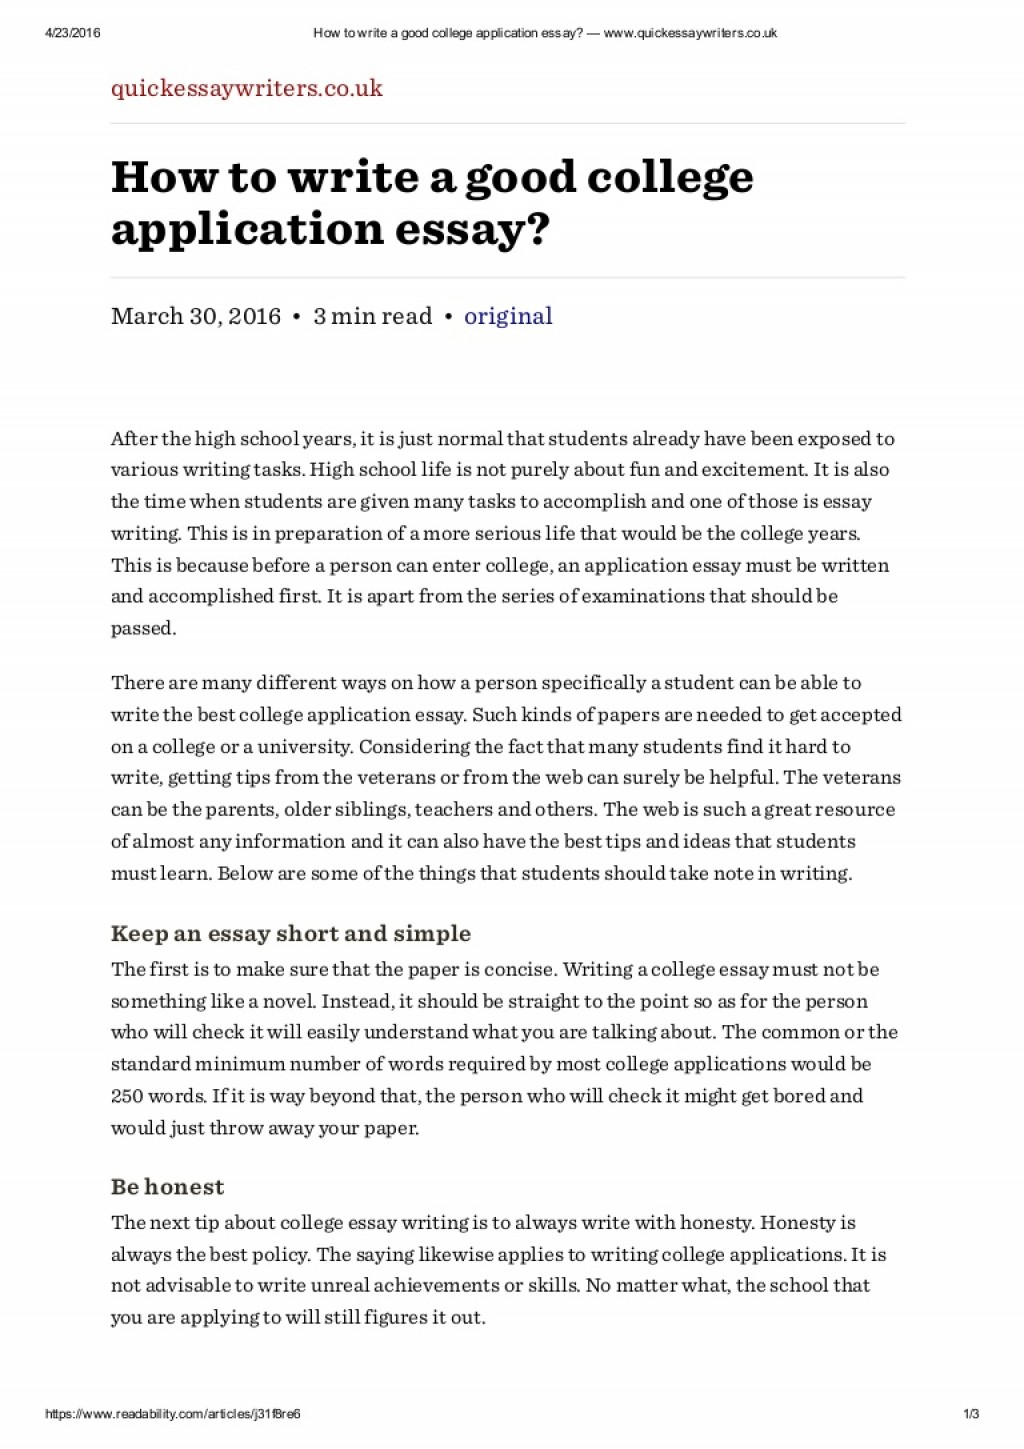 009 Essay Example College Application Howtowriteagoodcollegeapplicationessaywww Thumbnail Unbelievable Admission Writing Tips Admissions Format Heading Good Topics Large